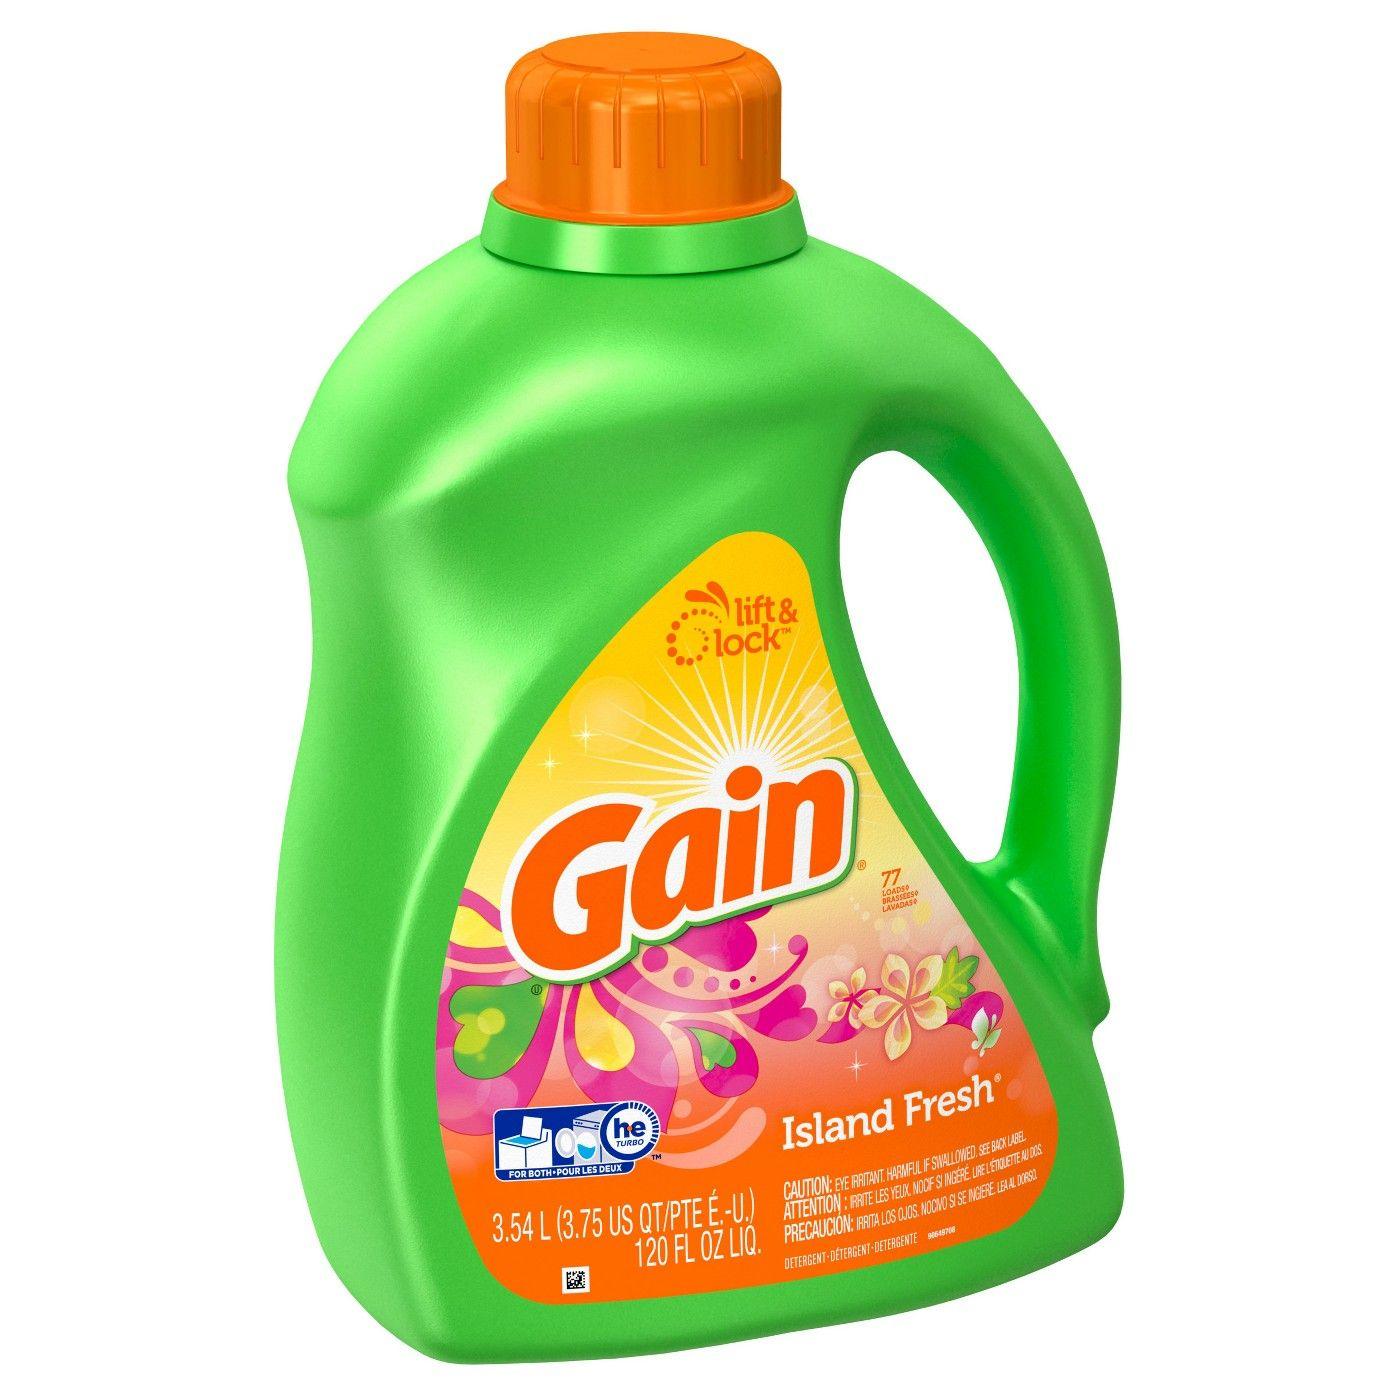 Gain Island Fresh Aroma Boost Liquid Laundry Detergent 120 Fl